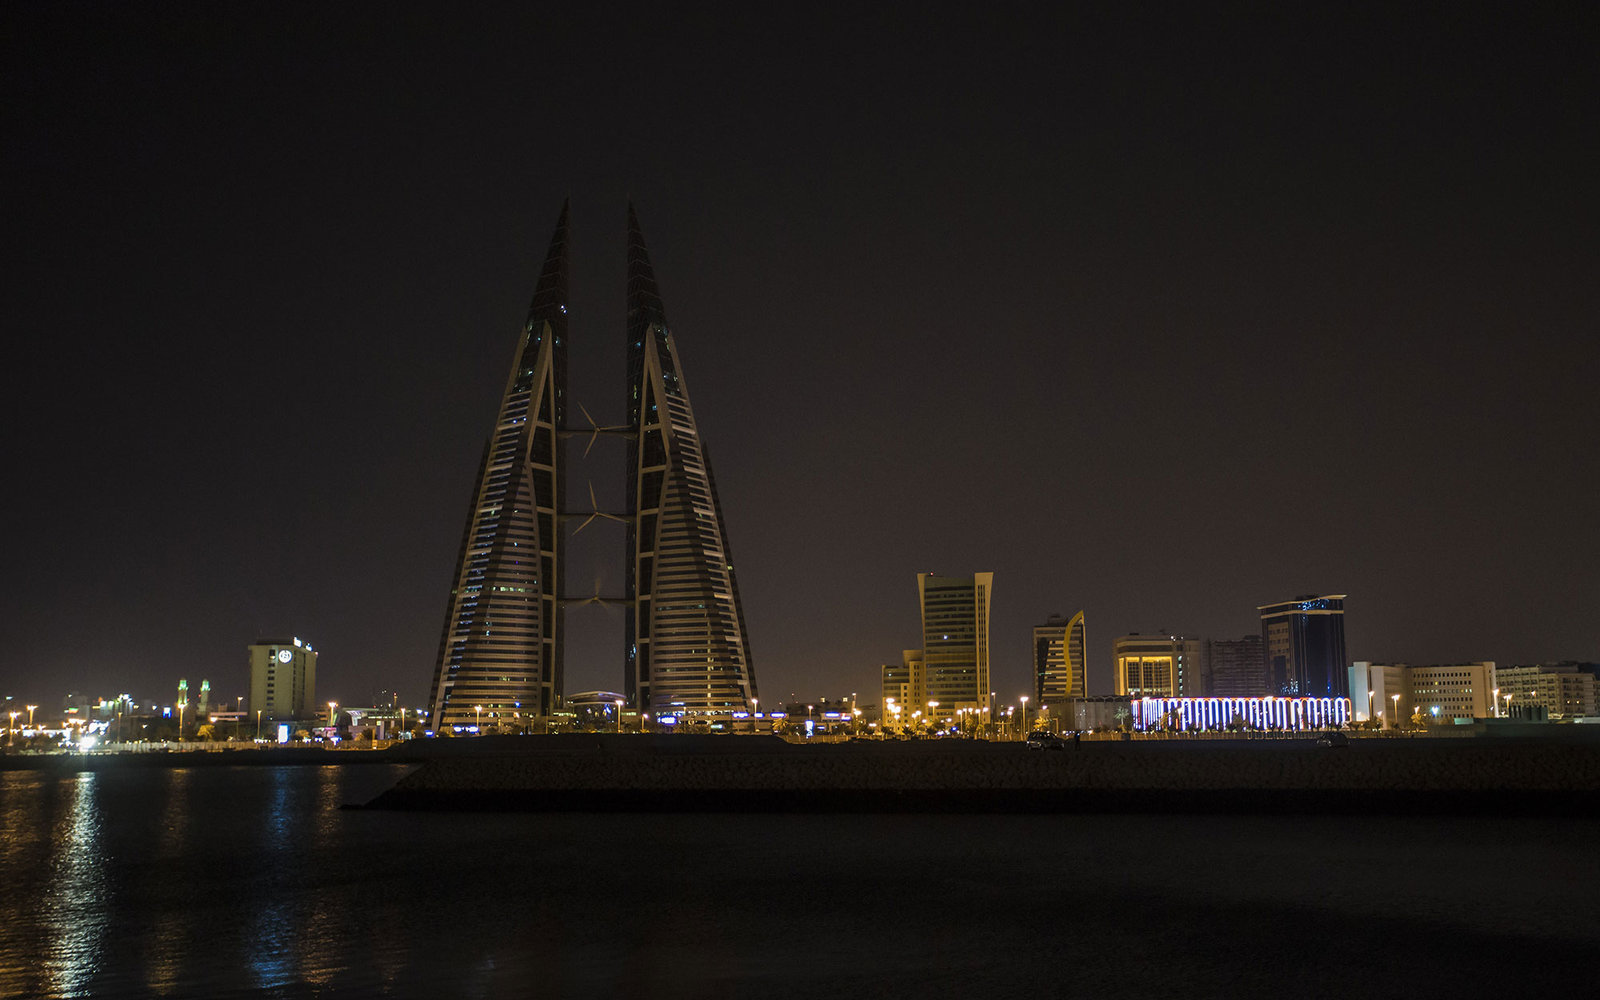 MANAMA, BAHRAIN - MARCH 19: Bahrain World Trade Center is seen after its lights were turned off during the Earth Hour event organized by the World Wide Fund for Nature (WWF) to draw attention to global climate change on March 19, 2016 in Manama, Bahrain.